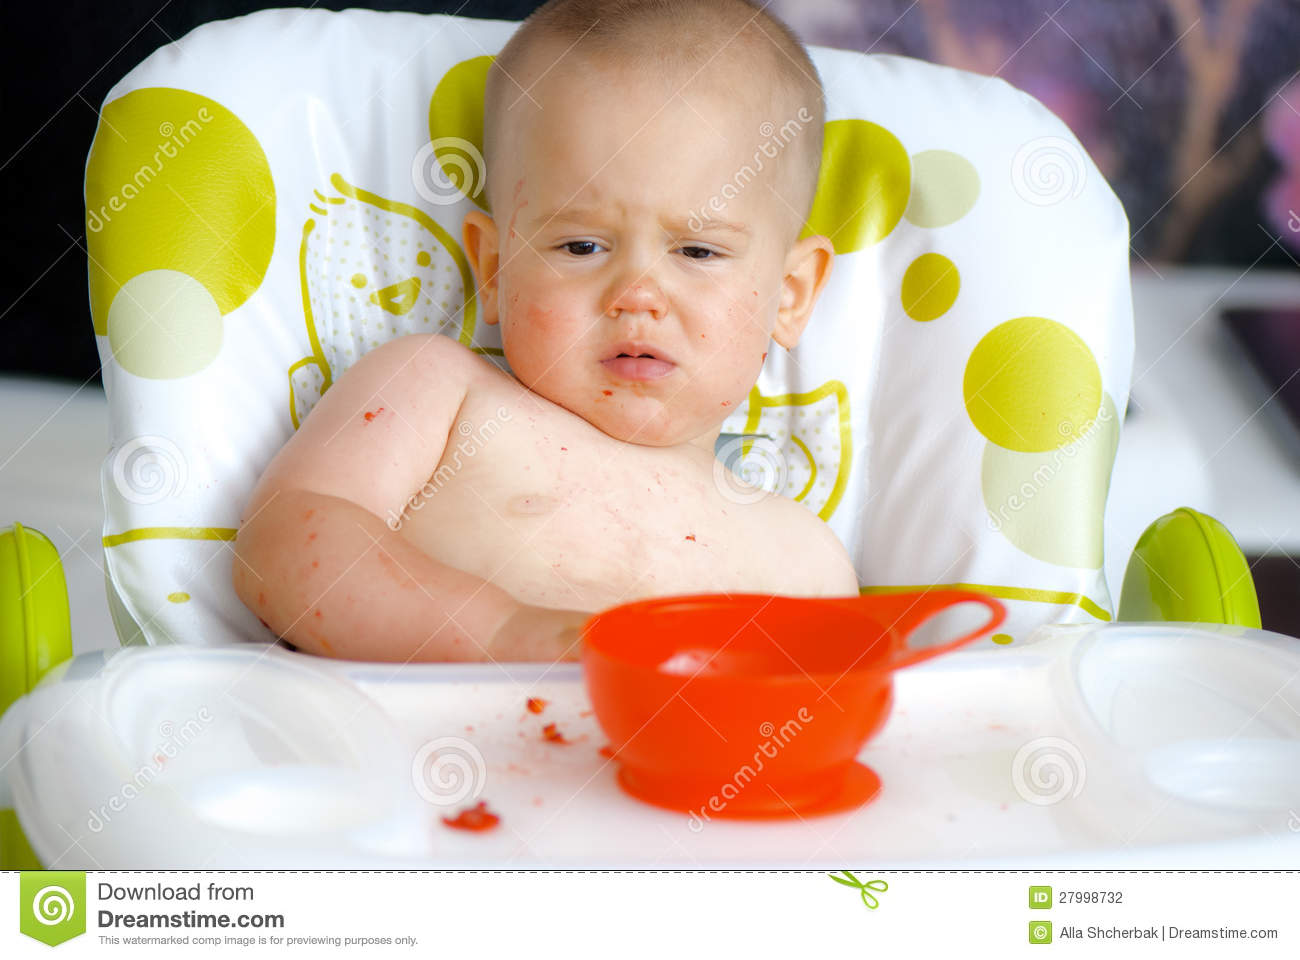 High Chair For Baby Boy Baby Boy Eating In High Chair With Messy Face Stock